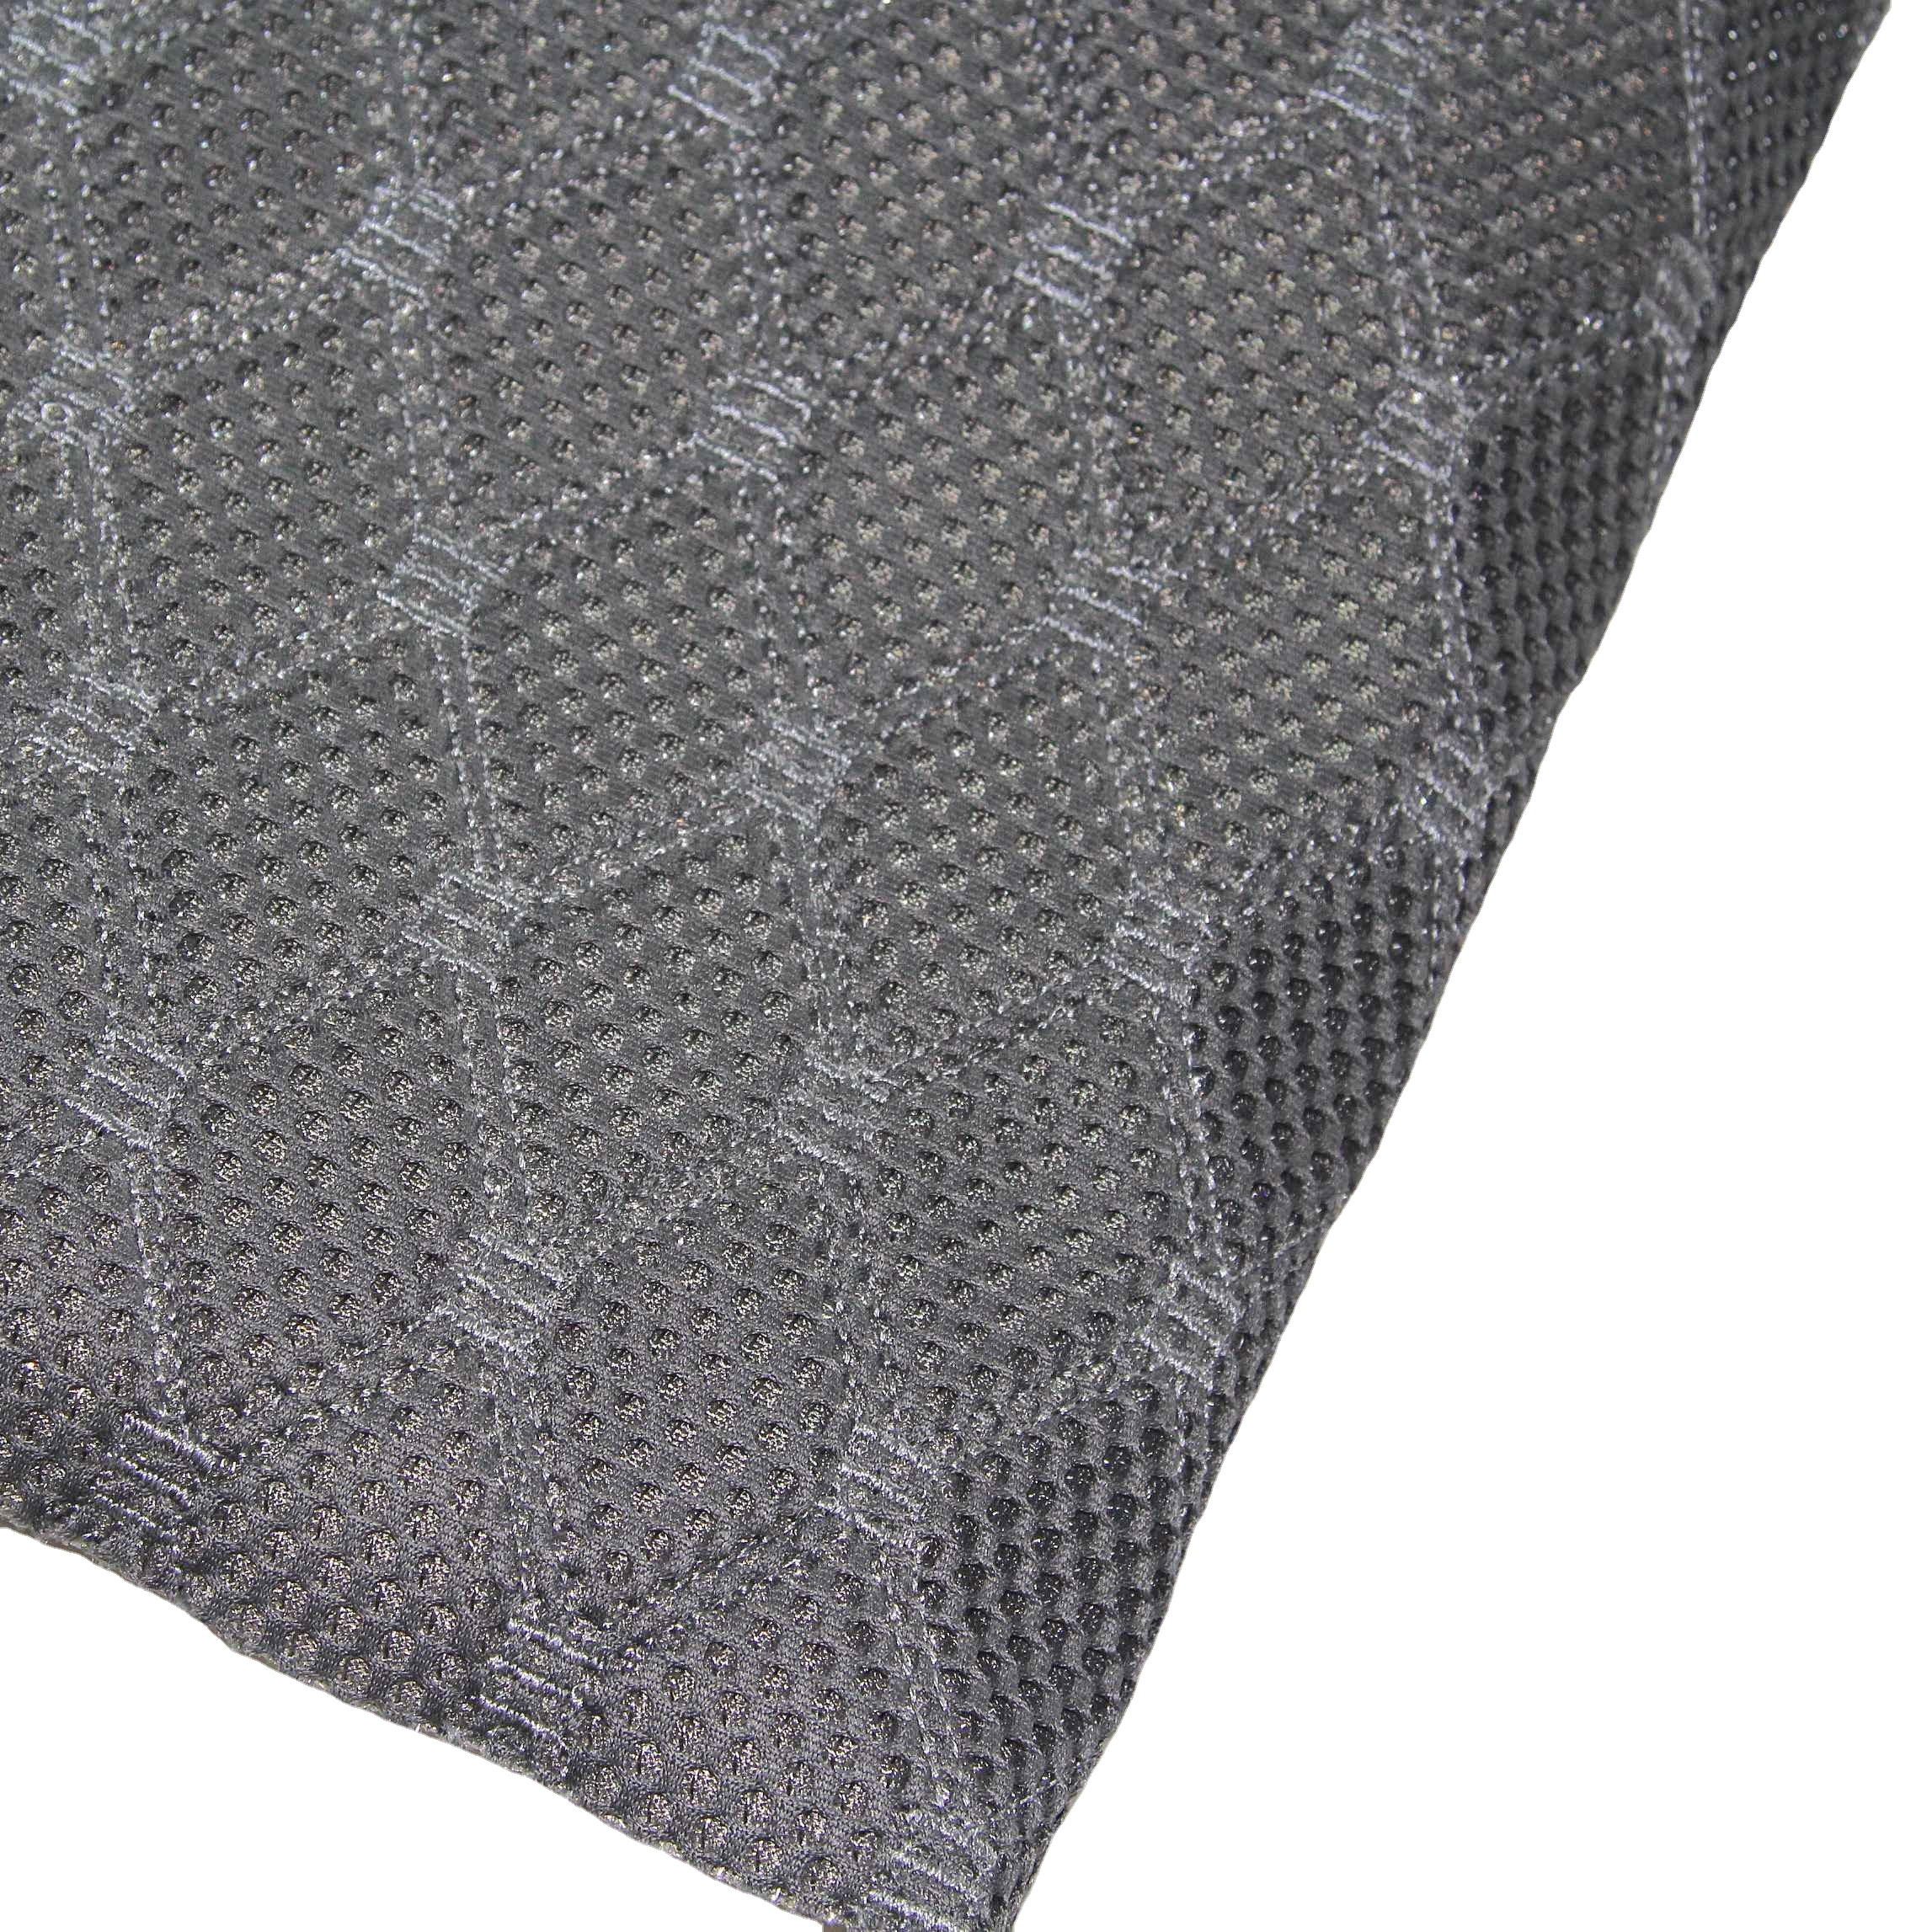 High Quality and Hot Sale Embroidery Design Mesh Fabric with Foam for Car Seat/ Bus Seat /Chair/ Auto Fabric